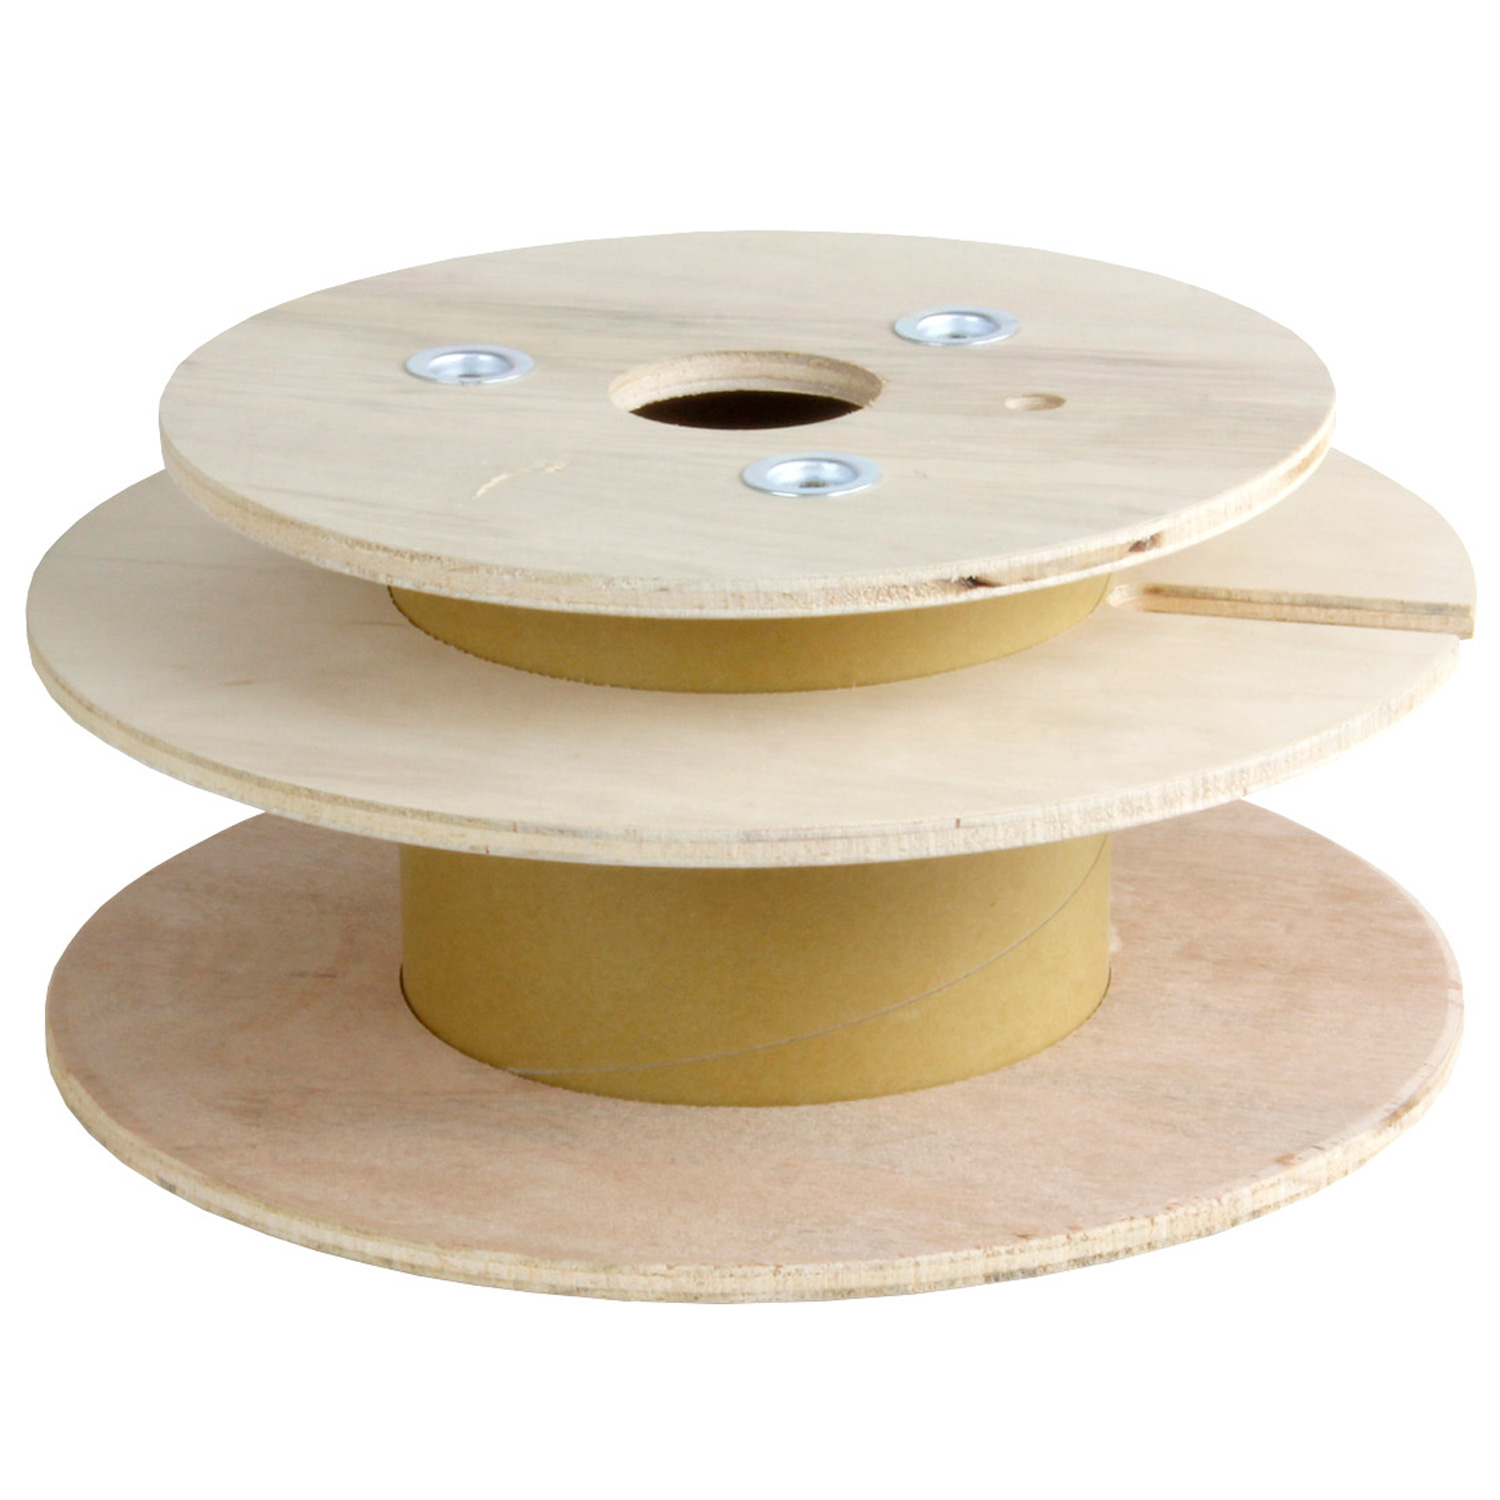 Plywood Cable Reel with Separation Layer (Fits up to 3mm OD Cable at 1000ft)